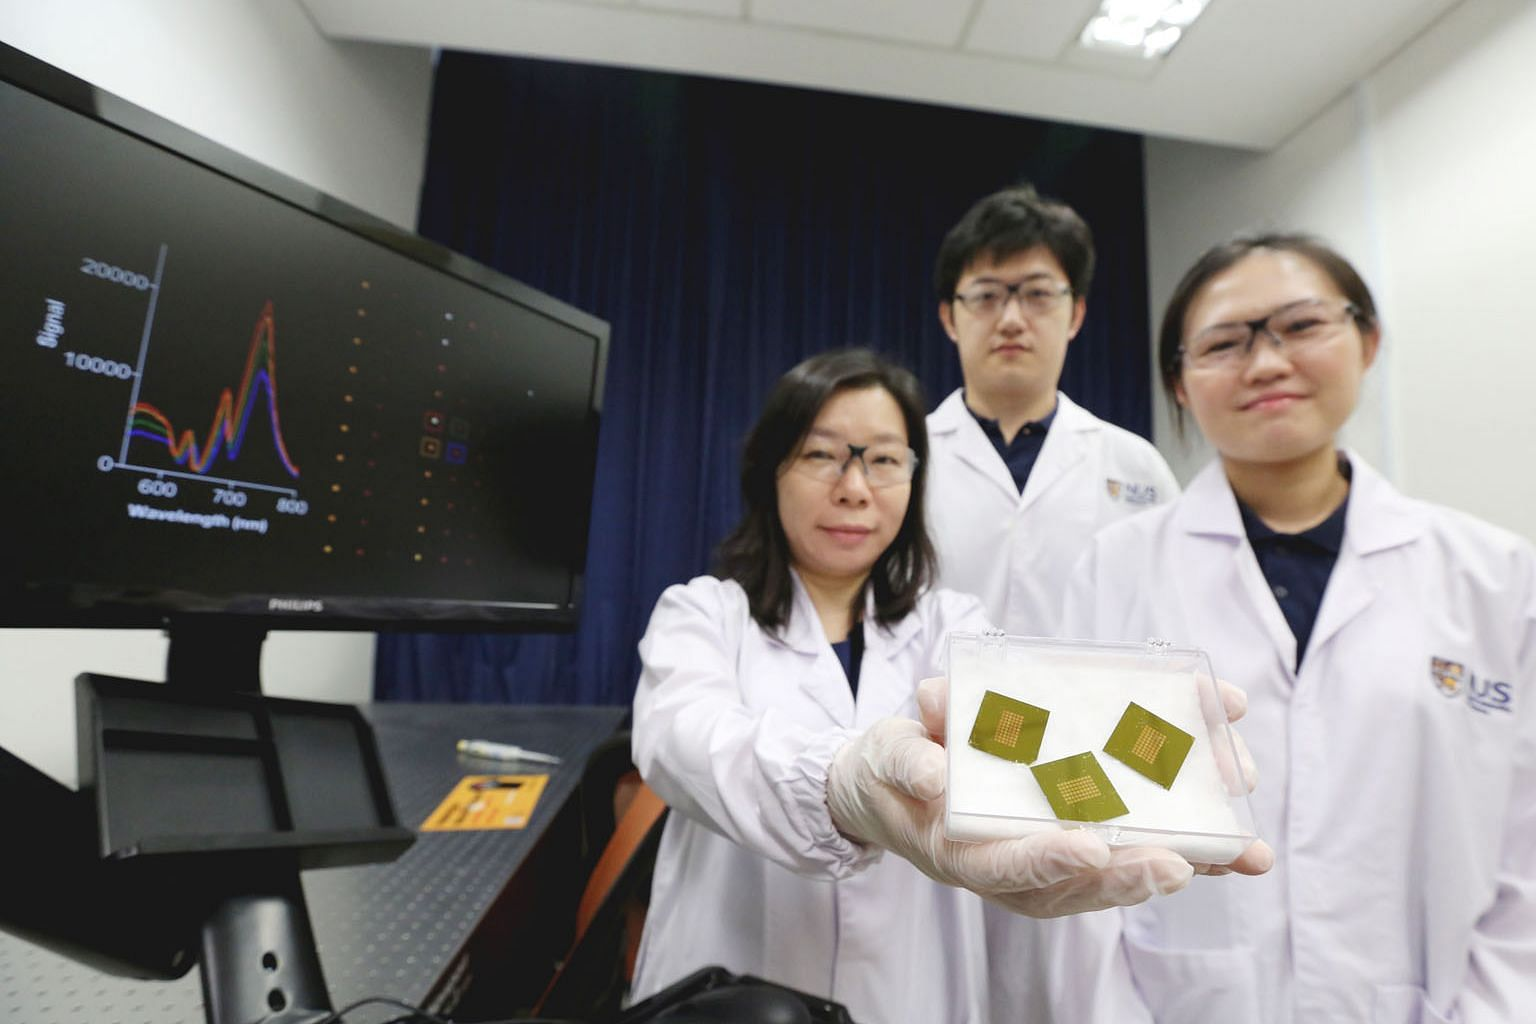 The NUS researchers (from far left) Assistant Professor Shao Huilin with doctoral students Zhang Yan and Carine Lim behind the test that can detect a molecule indicating early-stage Alzheimer's disease, the most common cause of severe dementia.